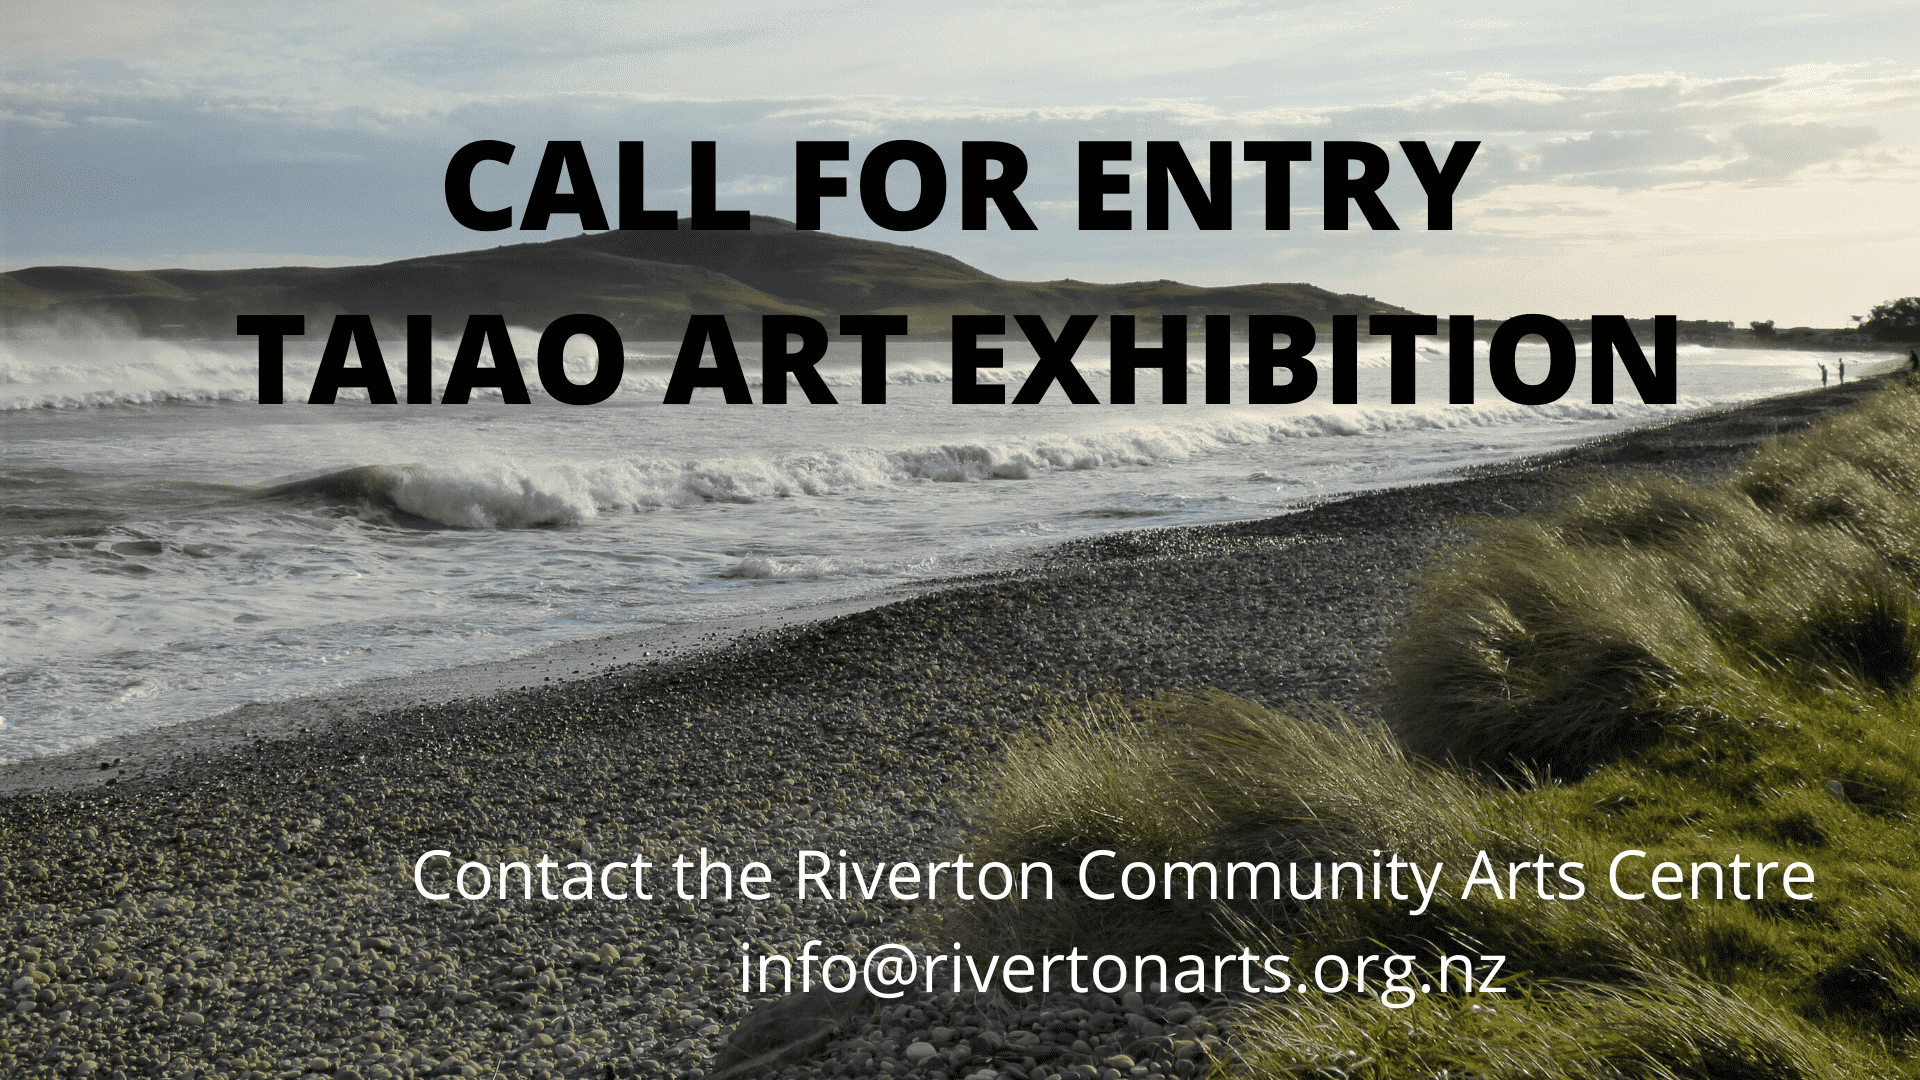 Taiao Art Exhibition Call for Entry Southland Artists